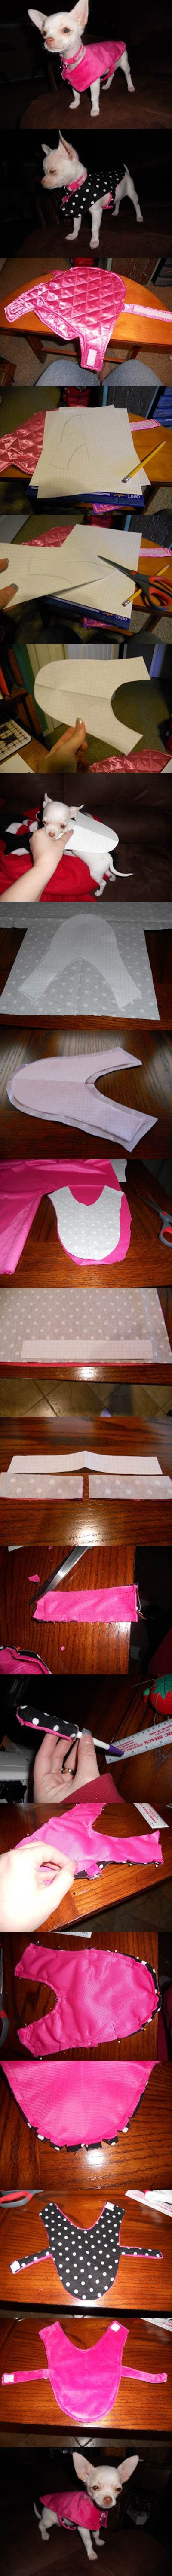 DIY Cute Reversible Dog Coat 2